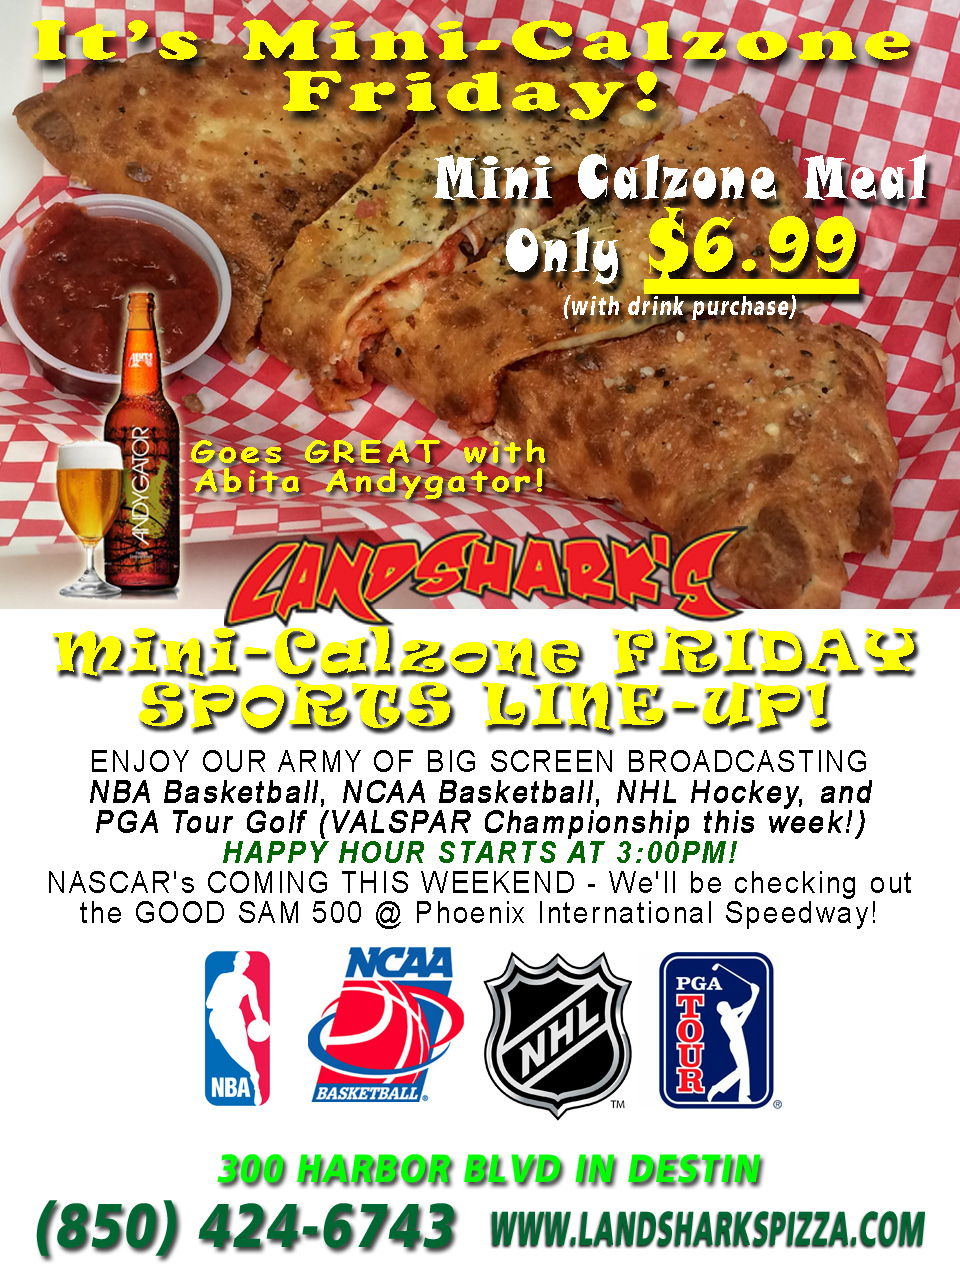 Destin Best Calzone Landsharks Pizza Friday Special 02